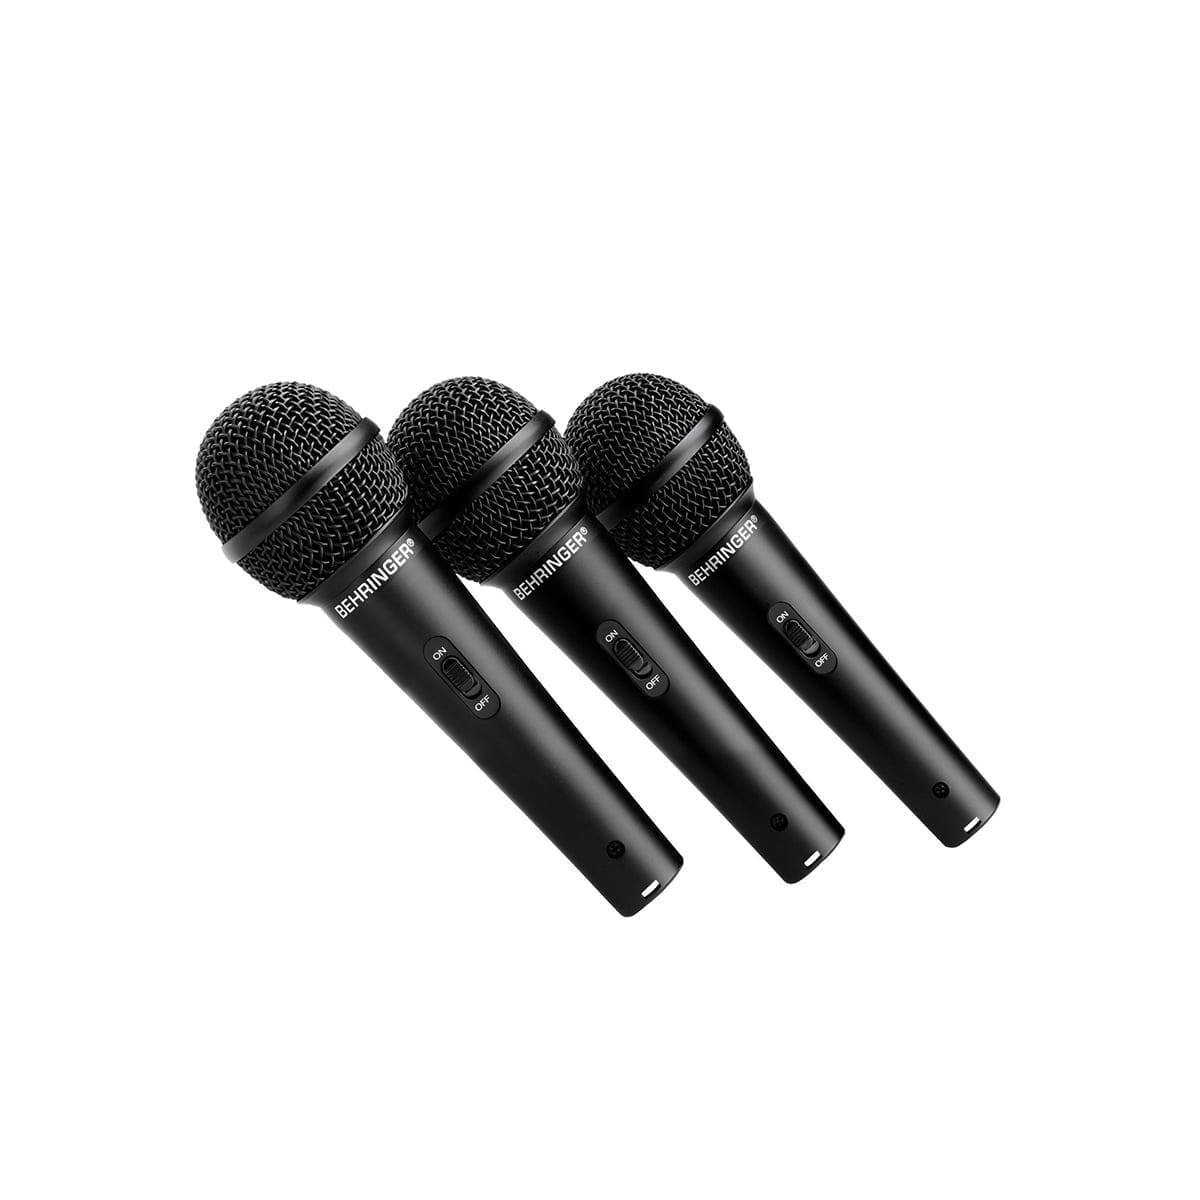 Behringer XM1800 3 Pack Microphone Kit